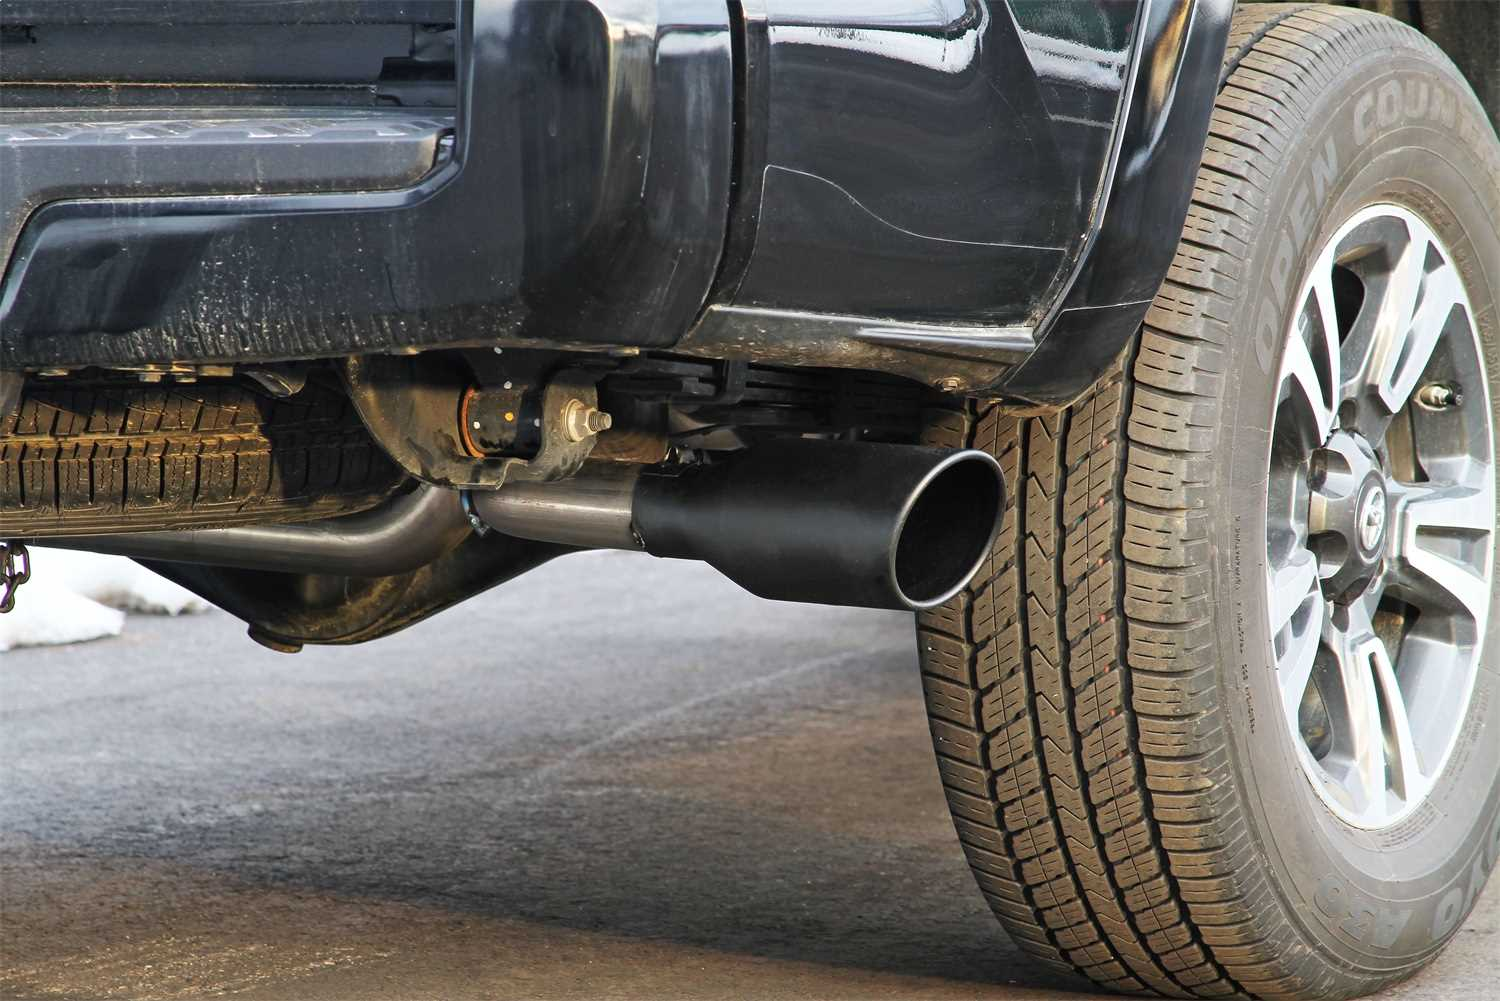 717918 Flowmaster FlowFX Cat-Back Exhaust System